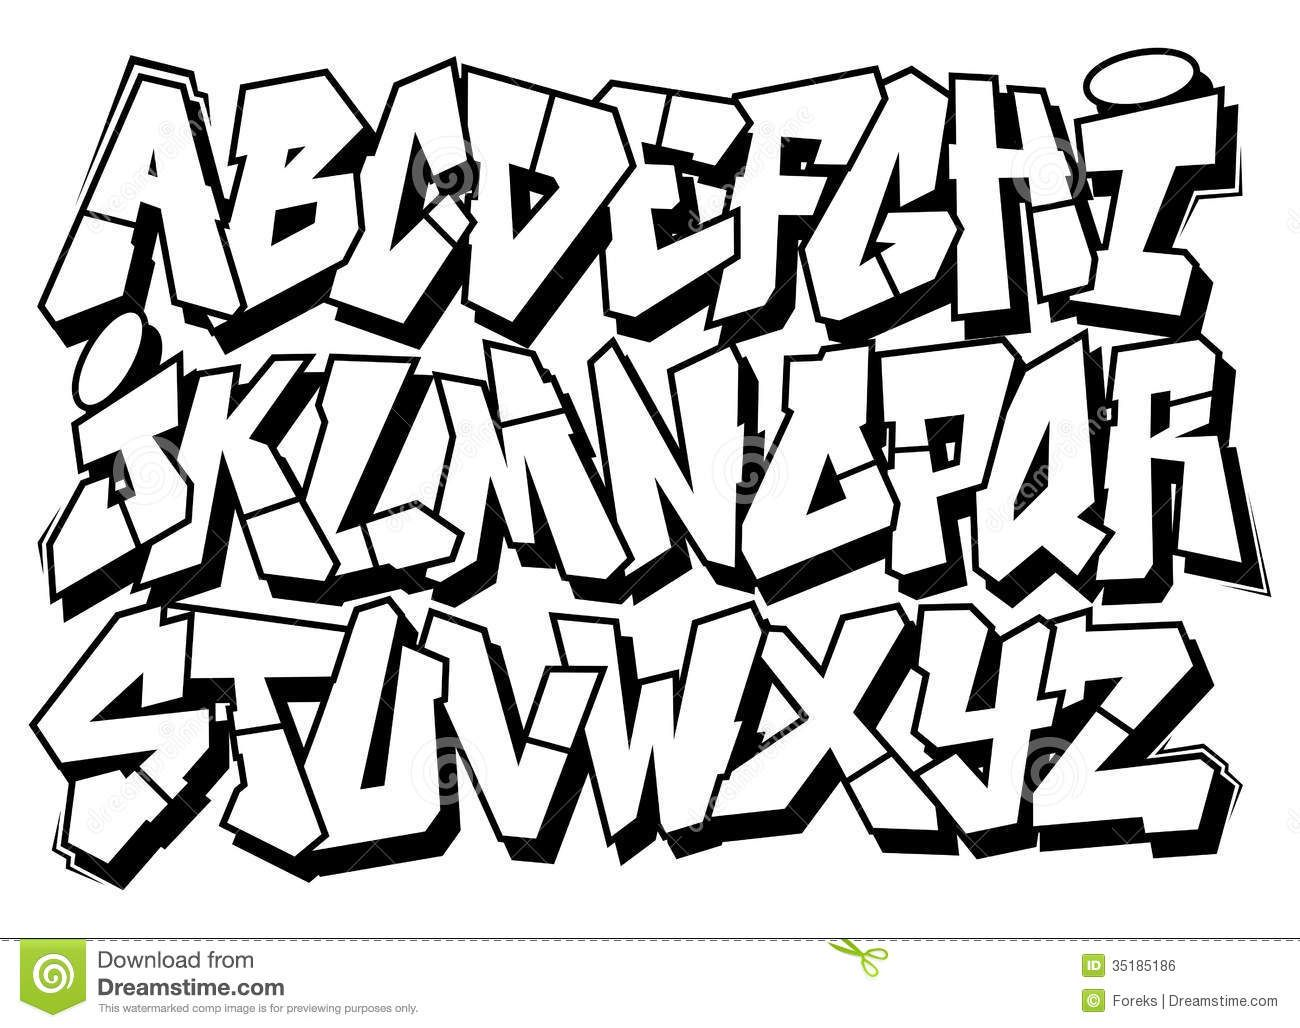 Arabic Graffiti Creator Free Graffiti Font Generator Wall Graffiti Art